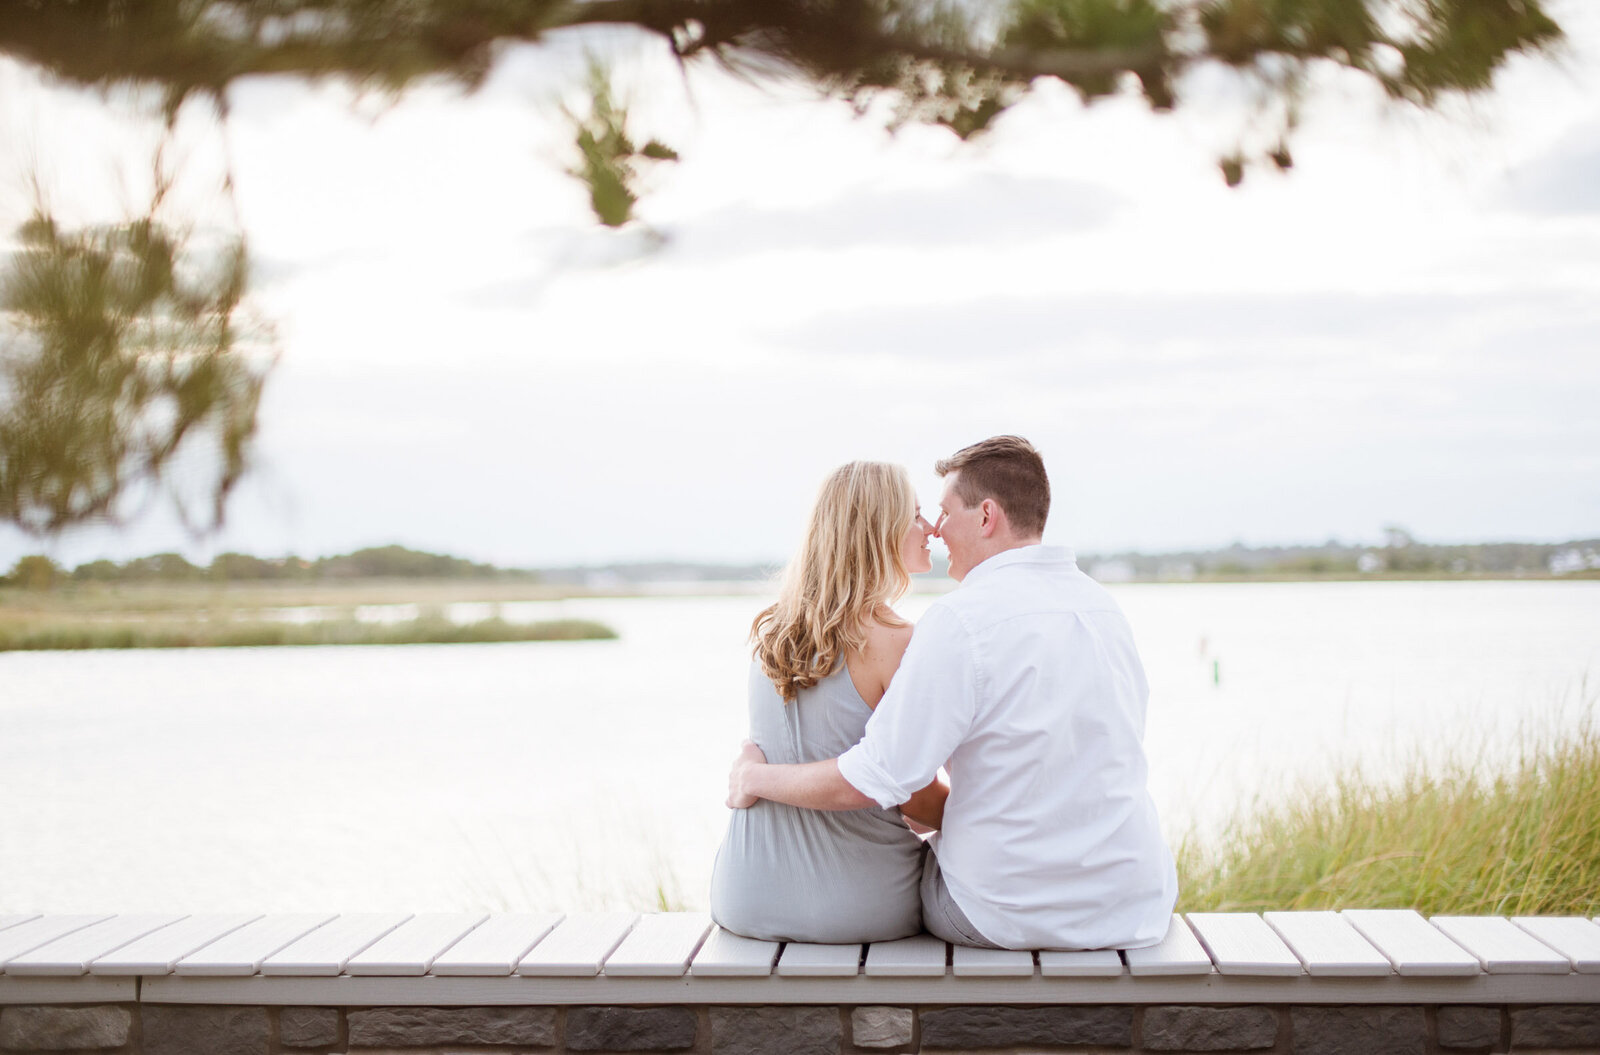 60-hudson-valley-ny-engagement-photographer